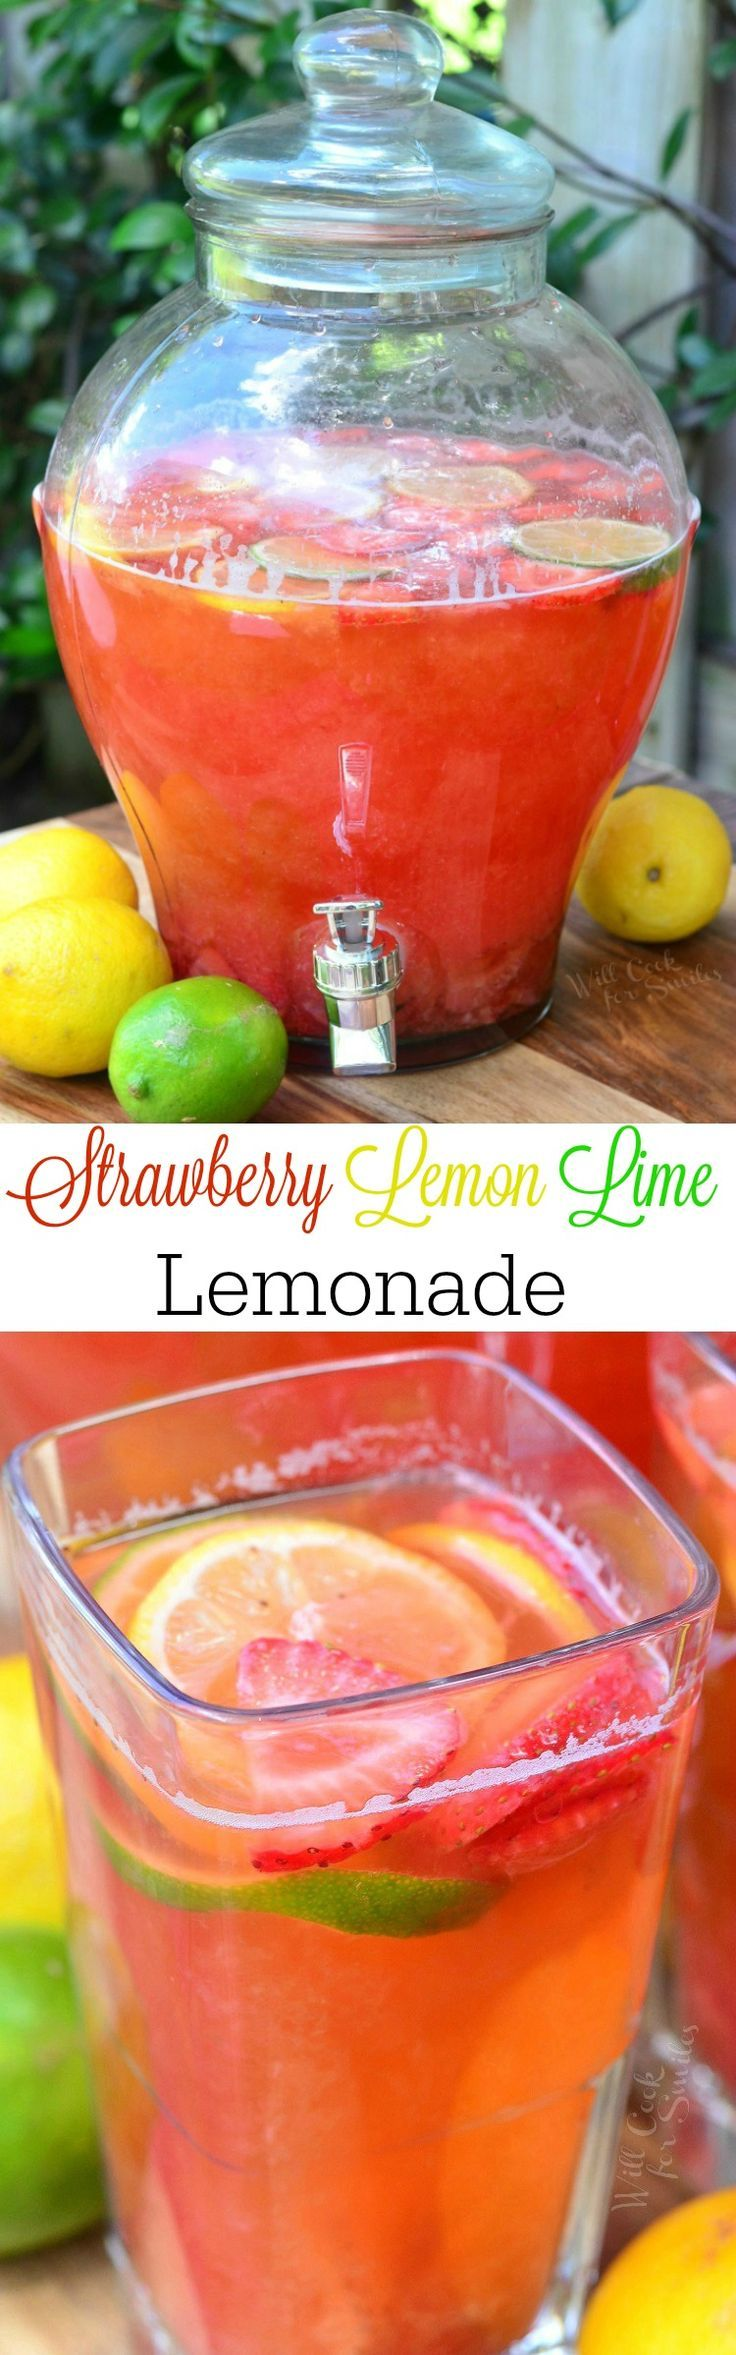 Homemade Strawberry Lemon Lime Lemonade 7: